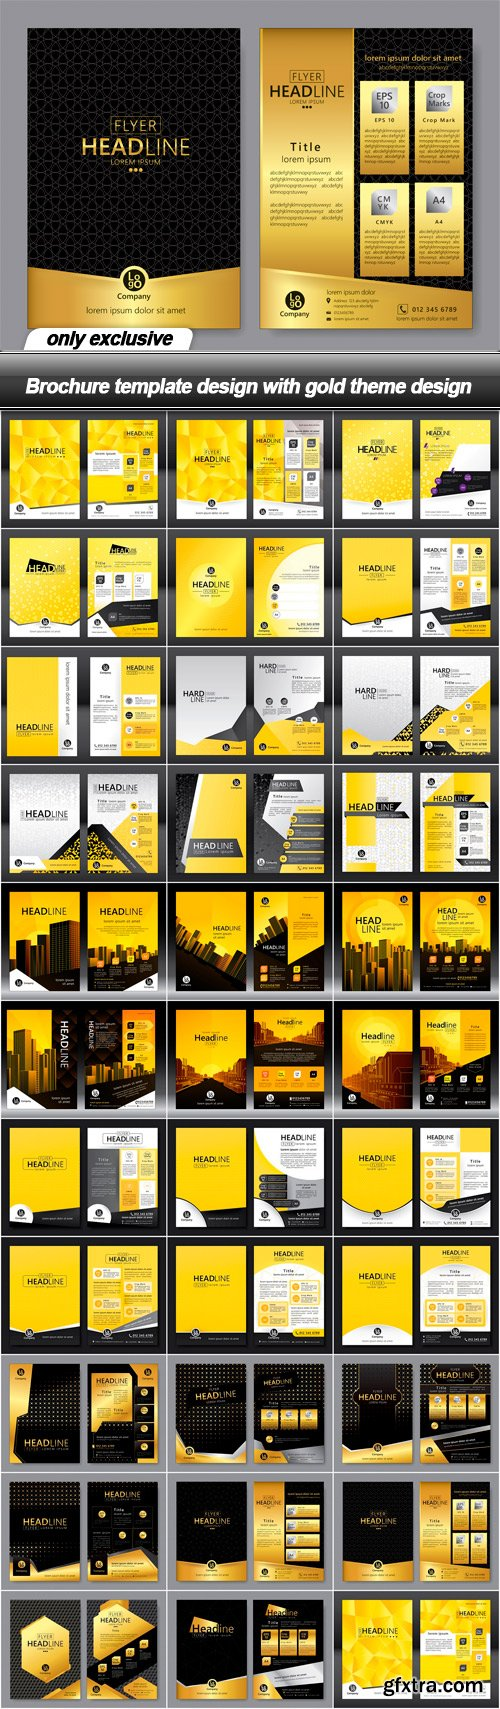 Brochure template design with gold theme design - 32 EPS